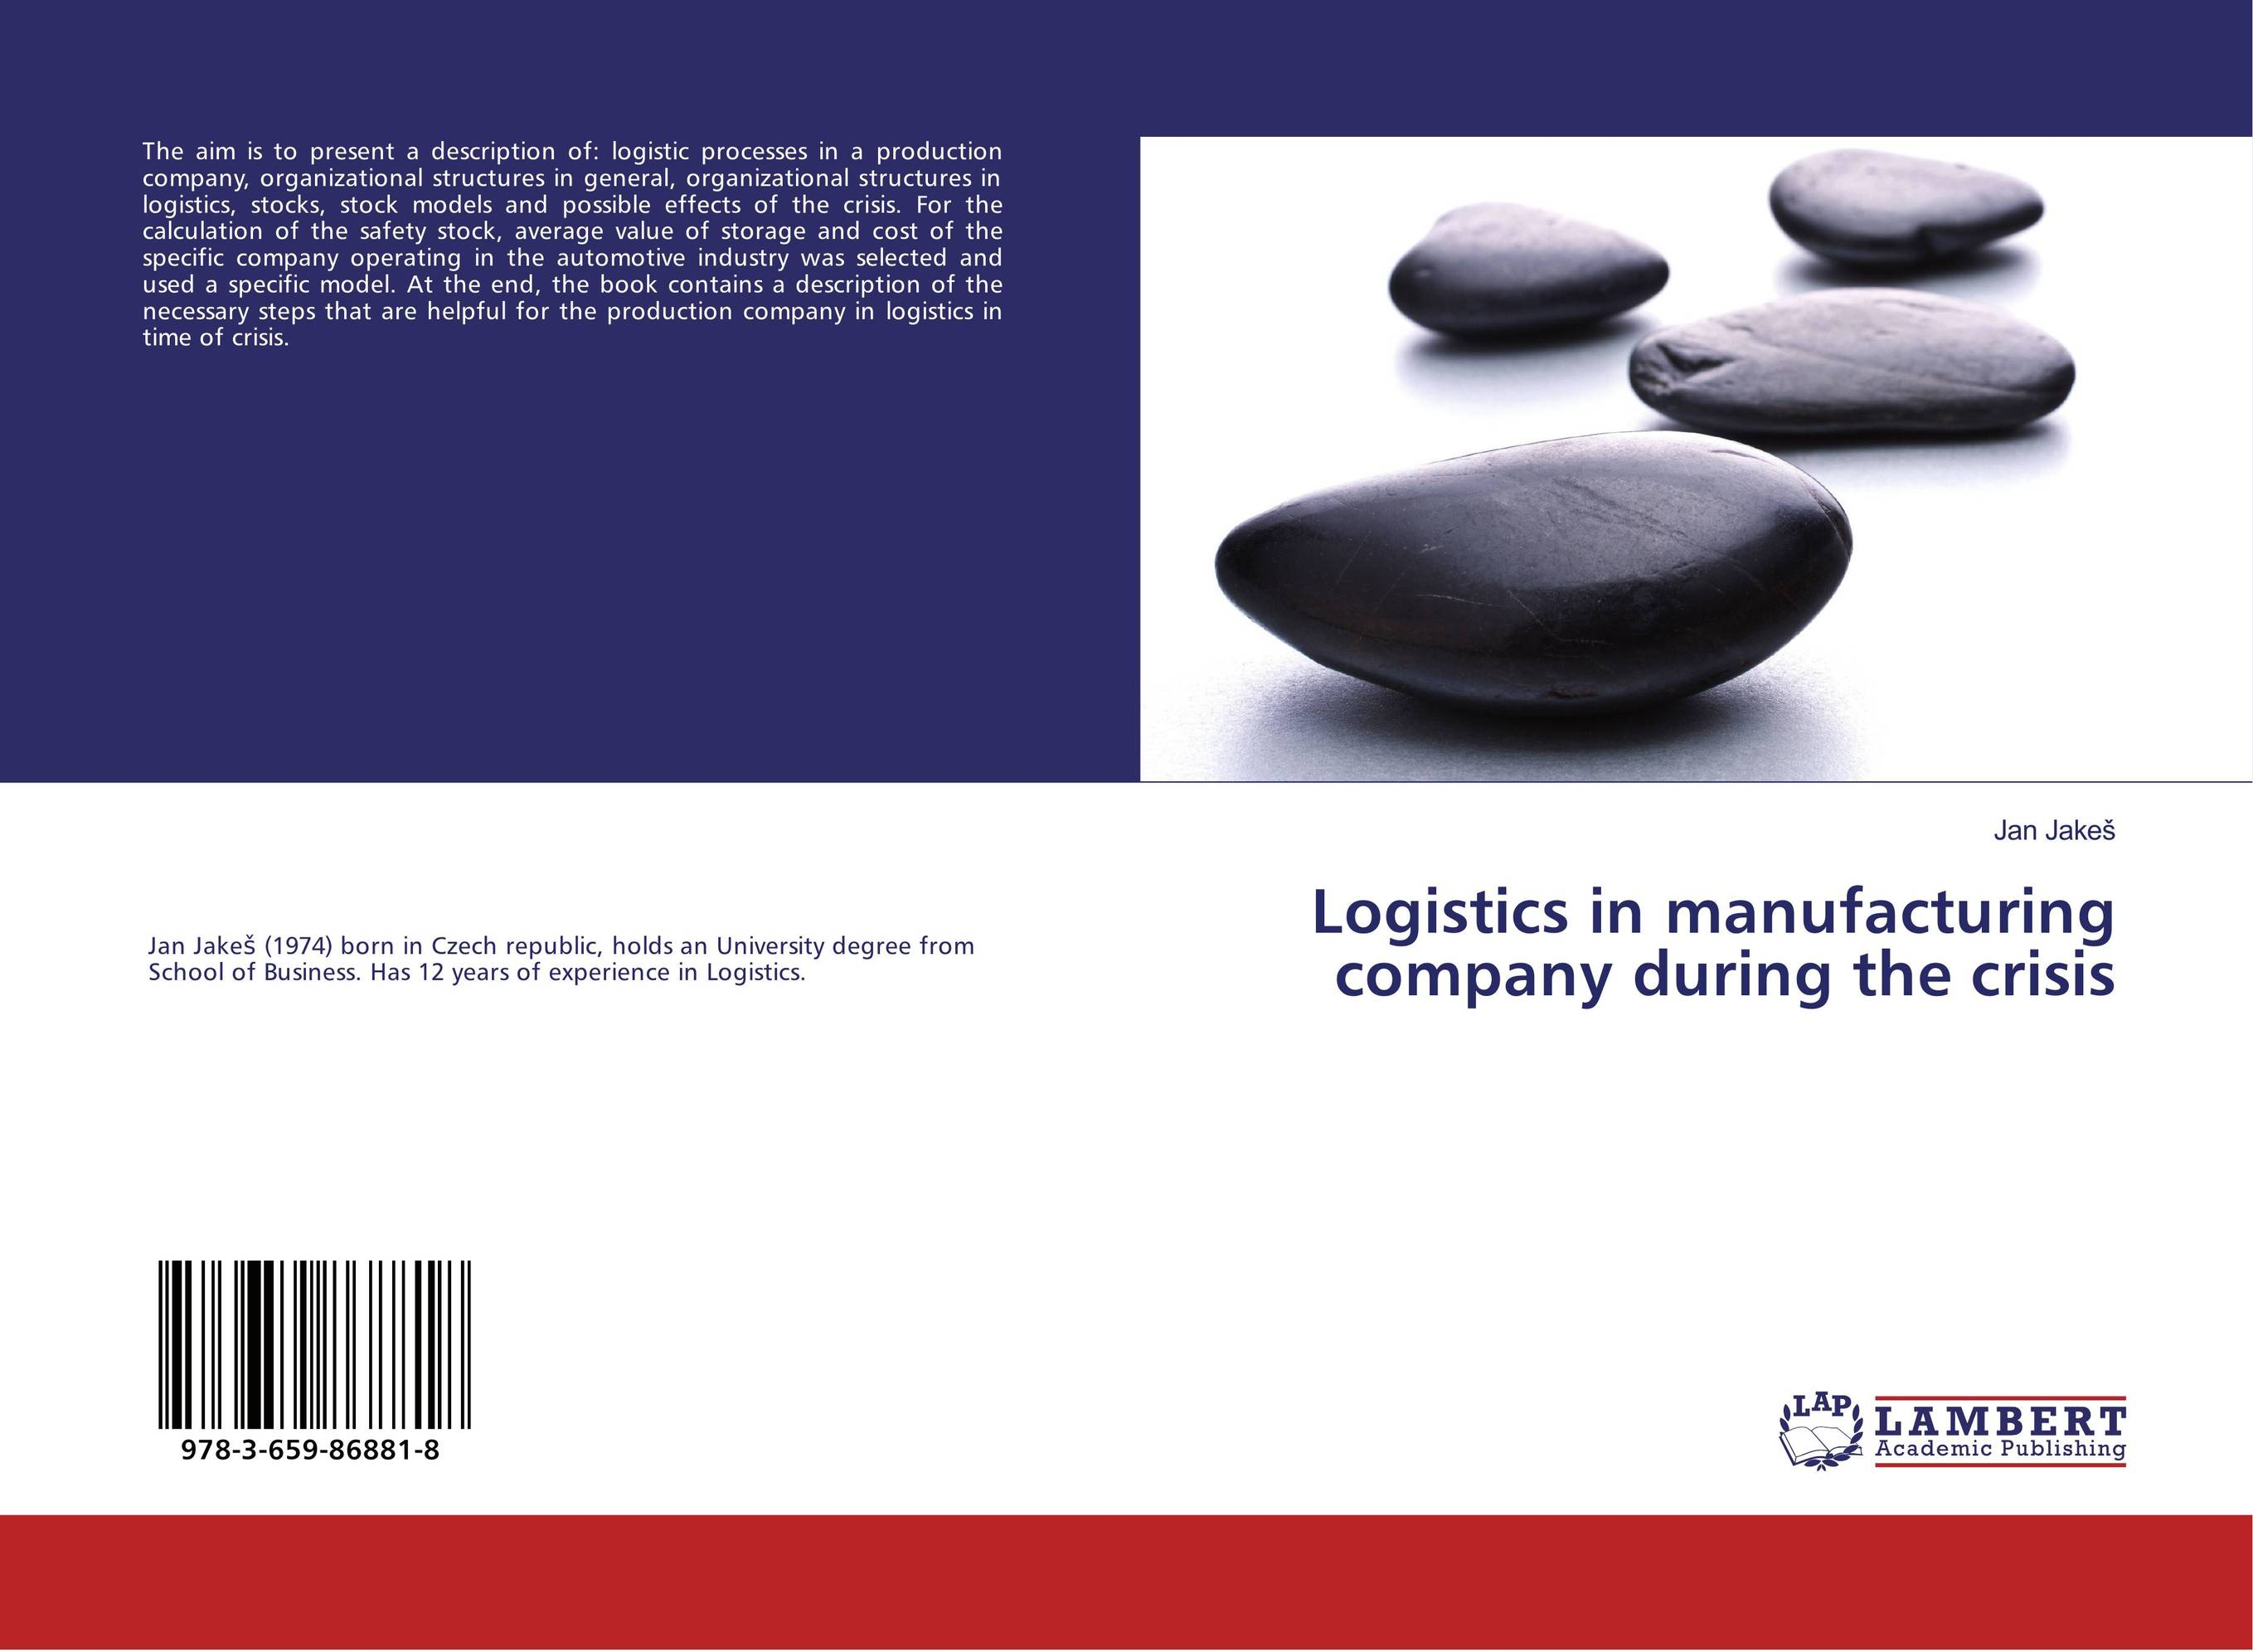 Logistics in manufacturing company during the crisis